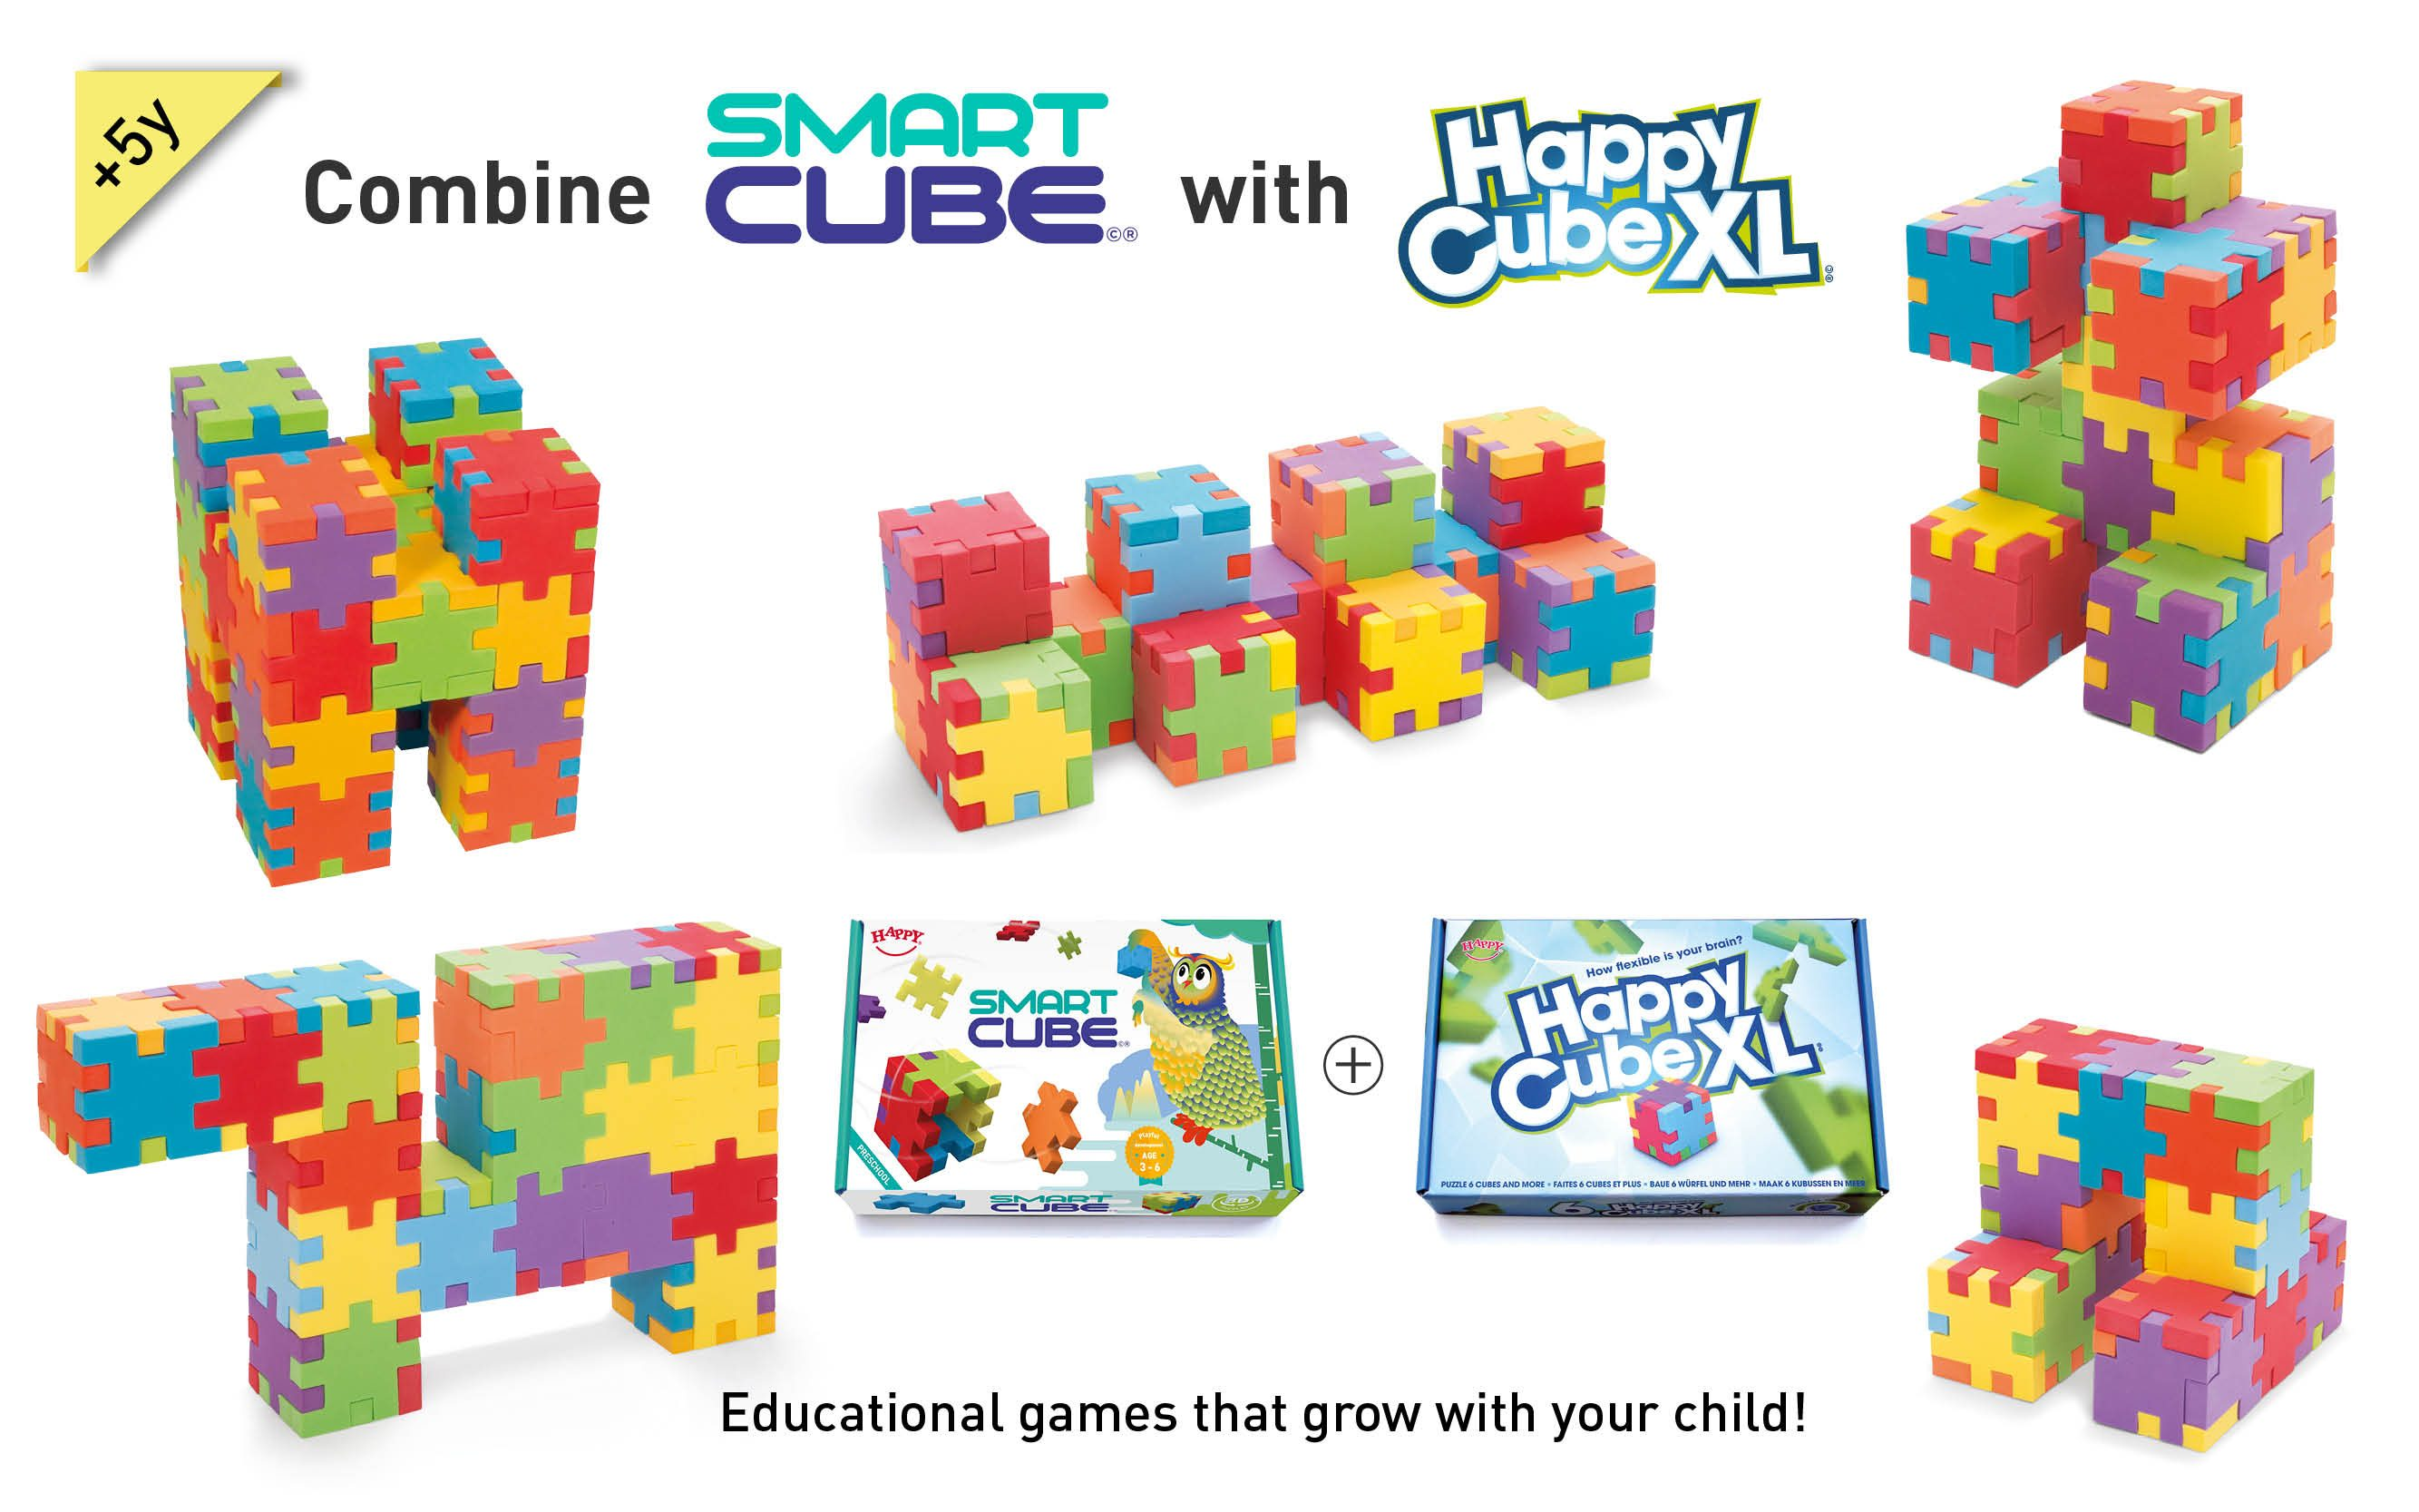 Happy_Smart Cube+HappyCubeXL_combined_foam_cube_puzzles_educational_game_with_cards_schools